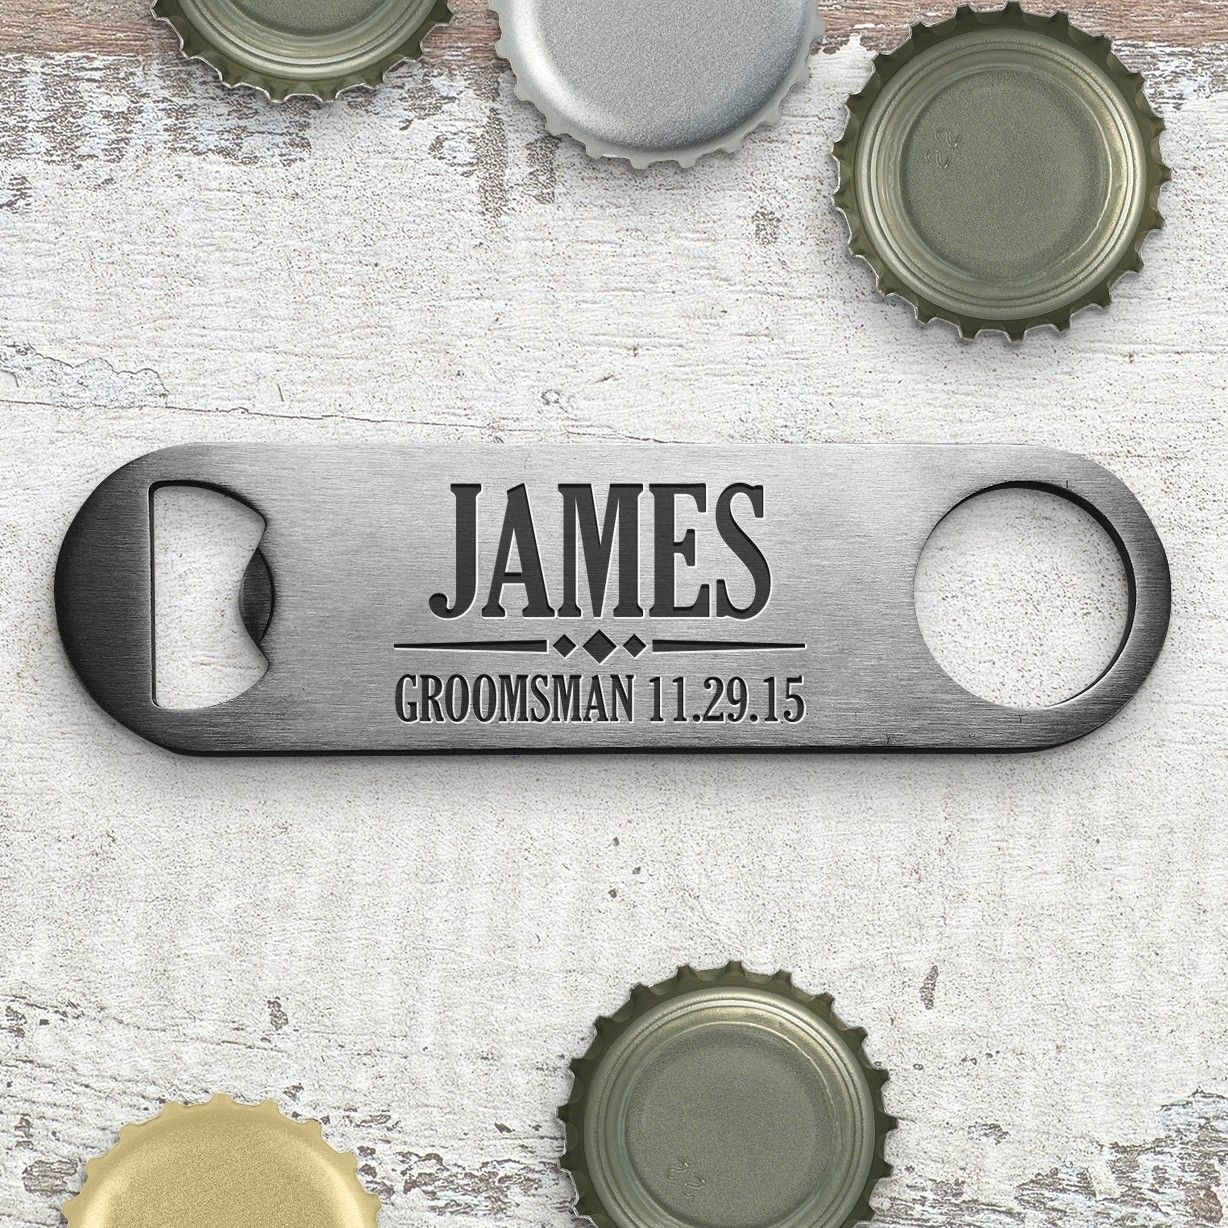 inexpensive groomsmen gift ideathere is a groupon in your (kris